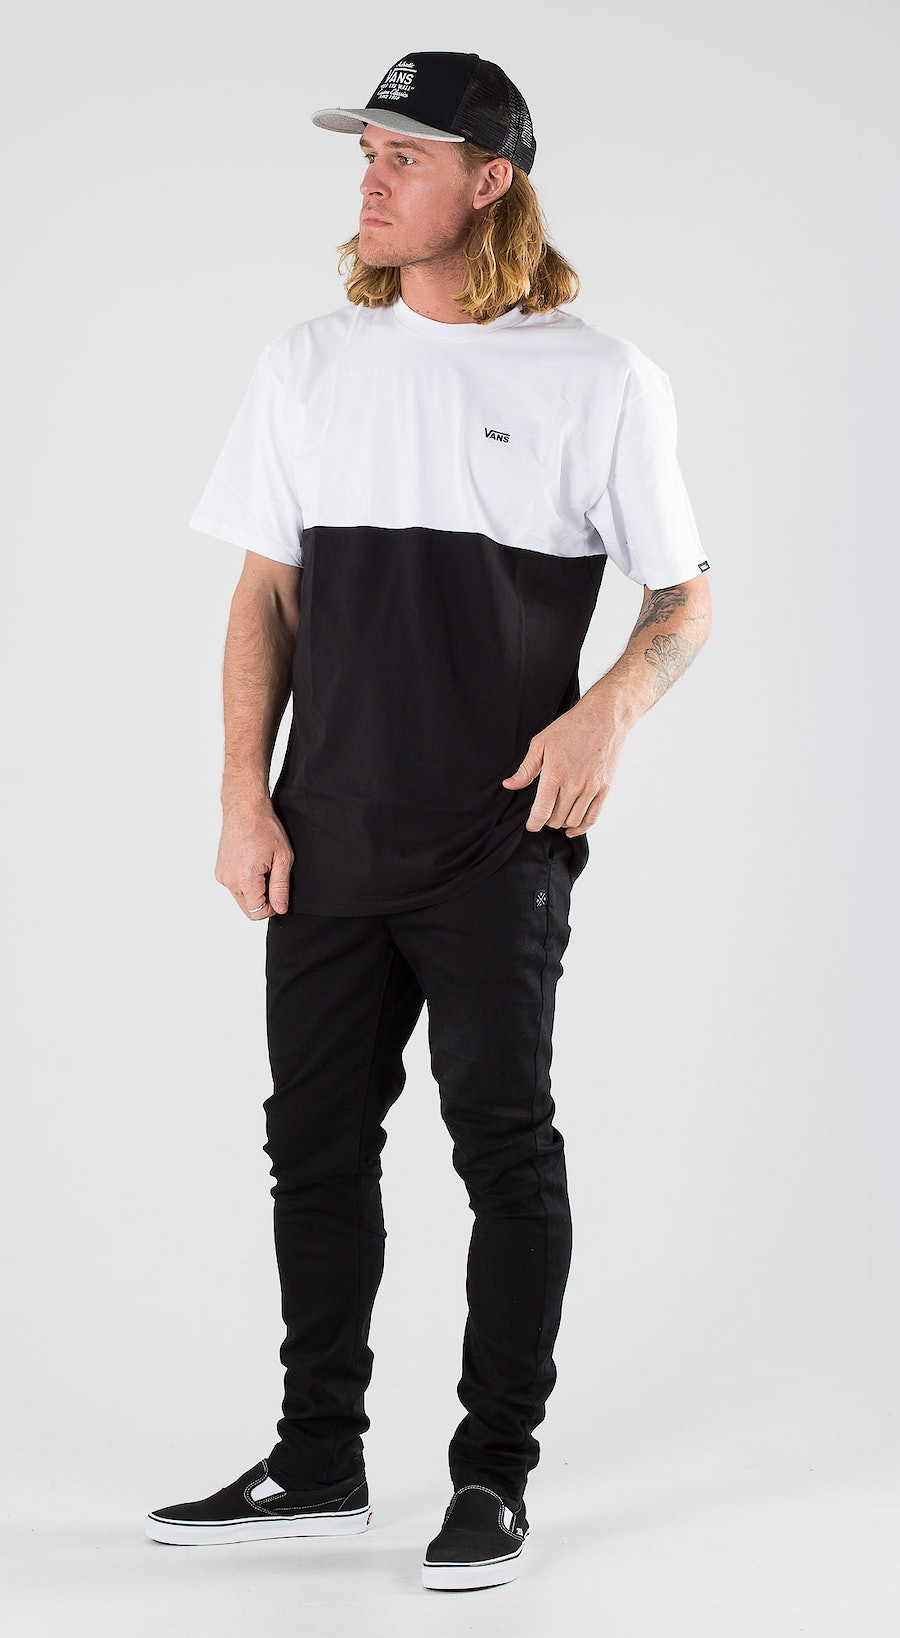 Vans Colorblock Tee Black White Outfit Multi